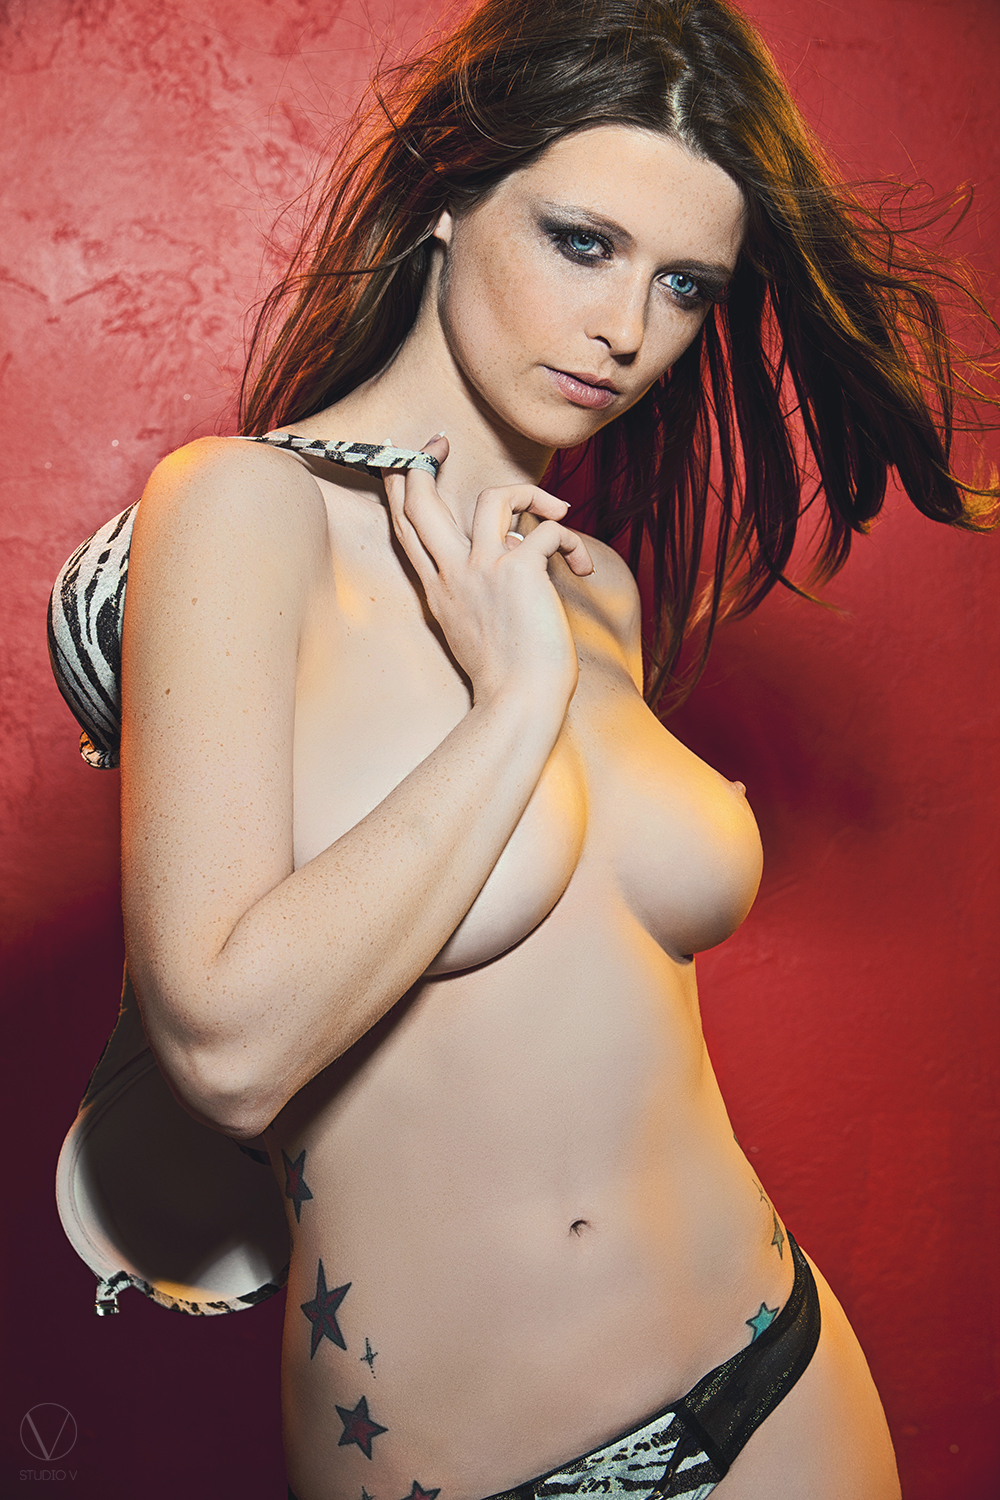 studio_v_photography_3462_topless_breasts.jpg